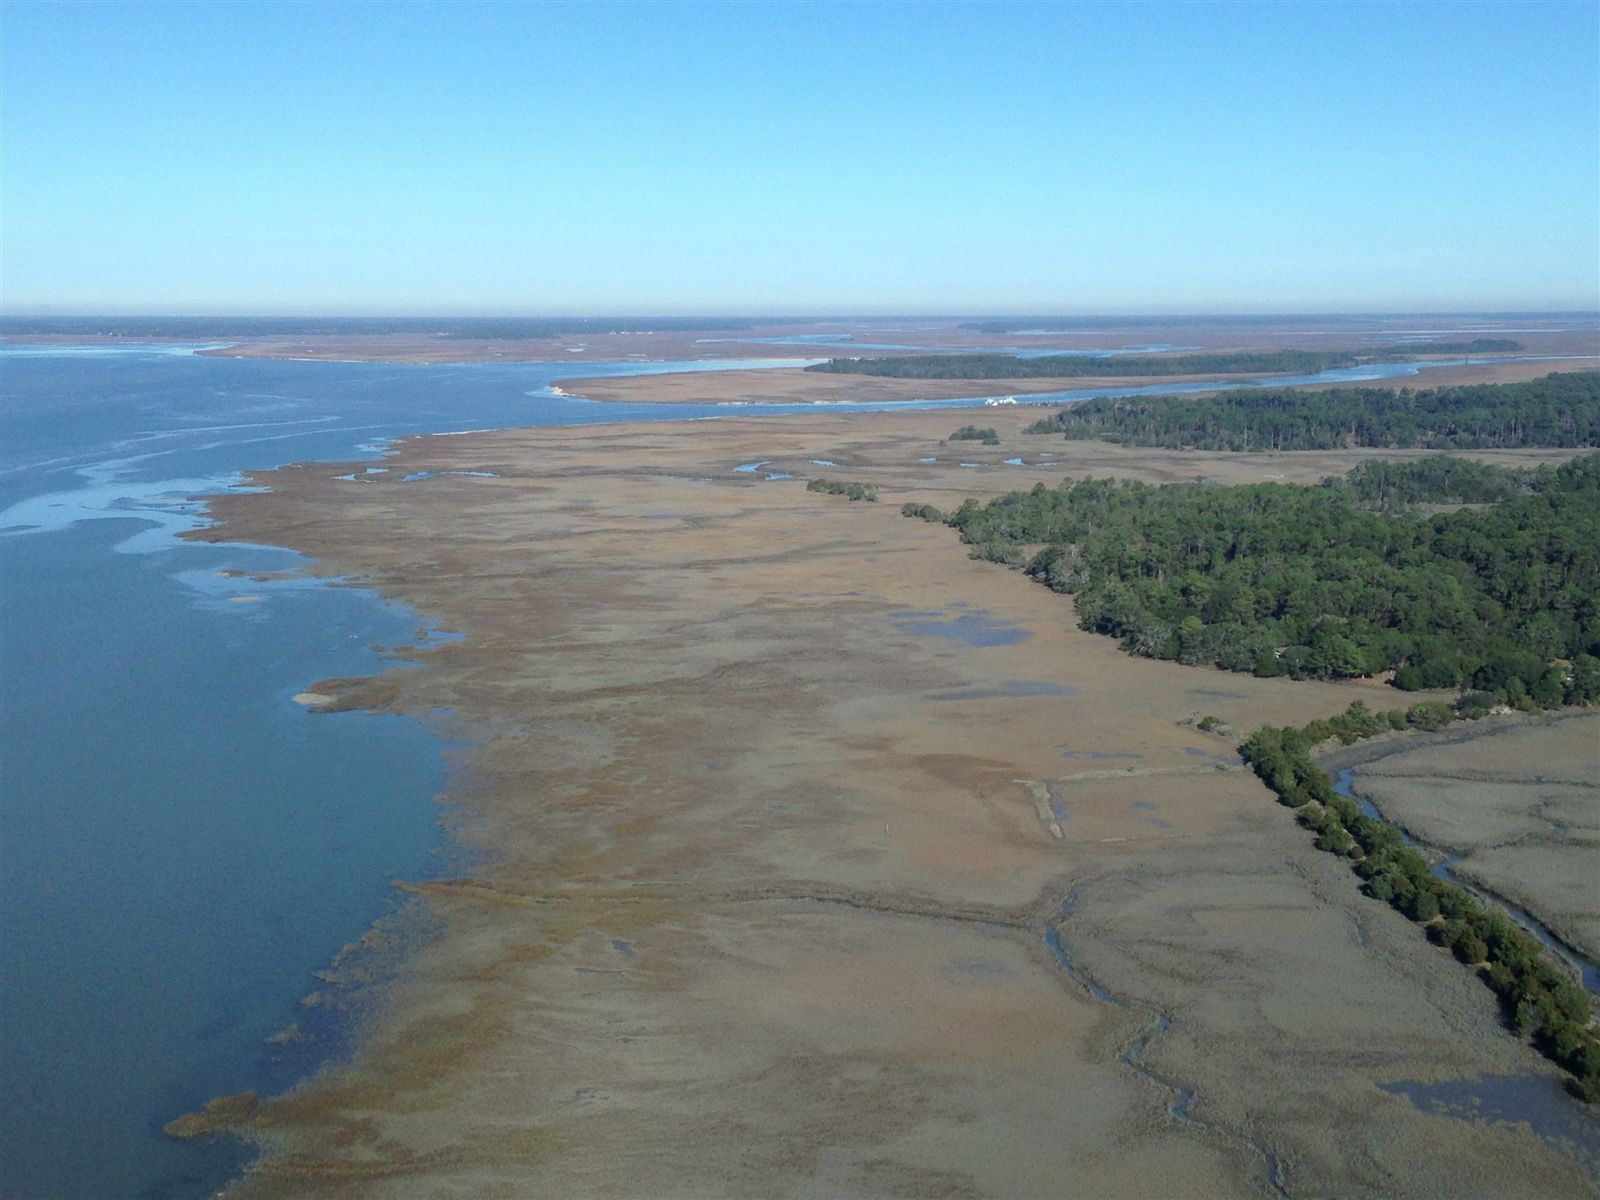 A photo showing the Igbo Landing from above